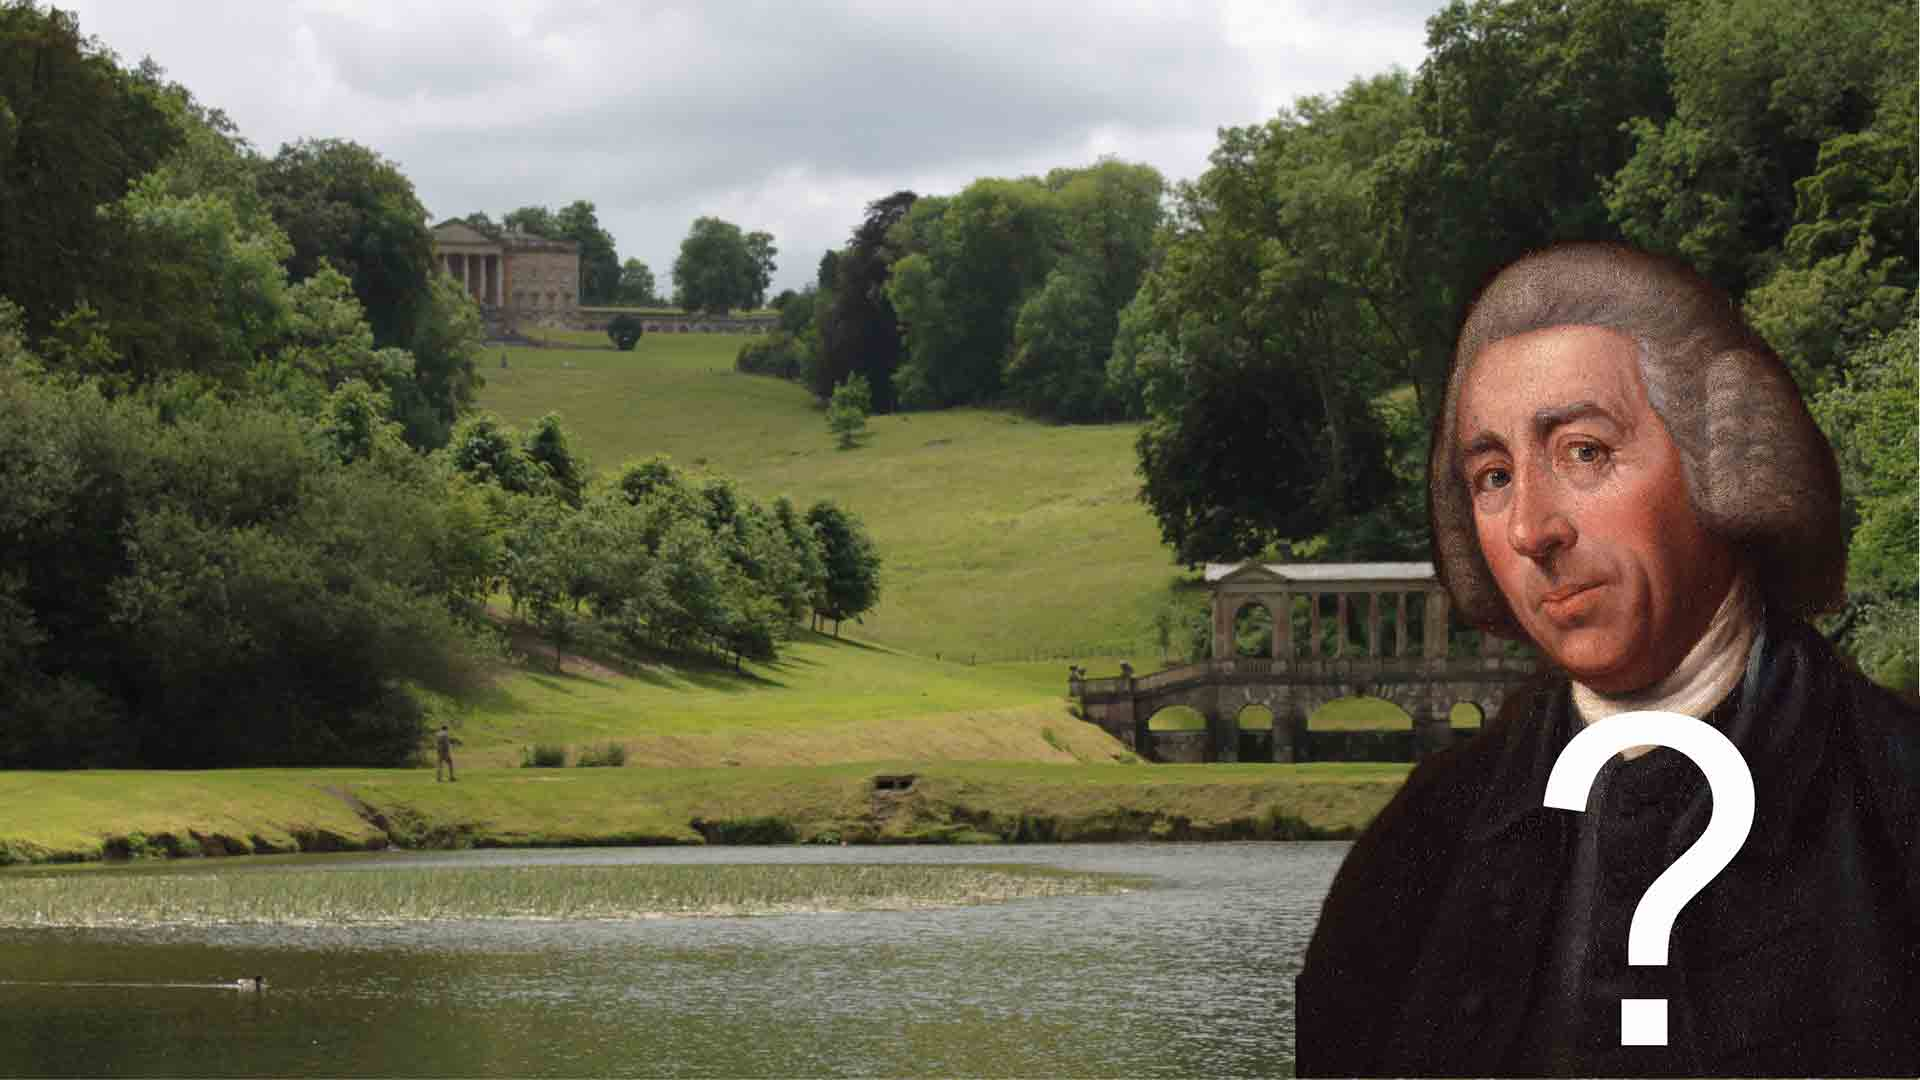 Lancelot Capability Brown as a landscape architect